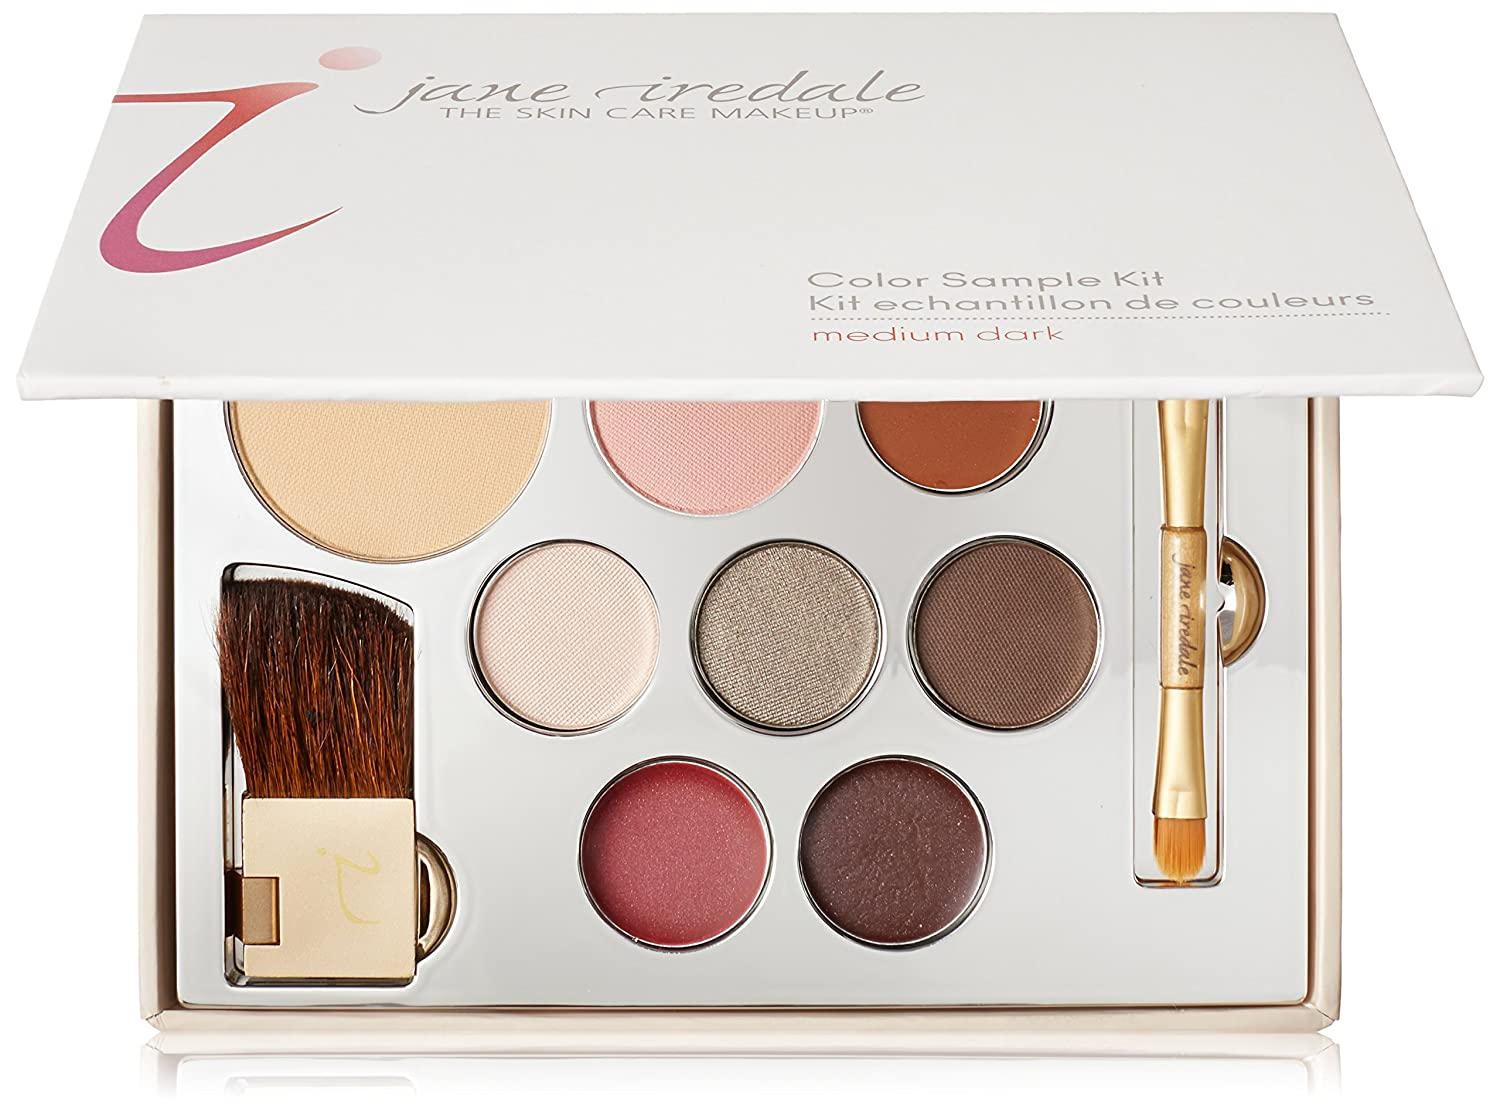 Makeup ideas jane iredale makeup makeup ideas tips and tutorials amazon jane iredale color sample kit mediumdark luxury beauty nvjuhfo Choice Image